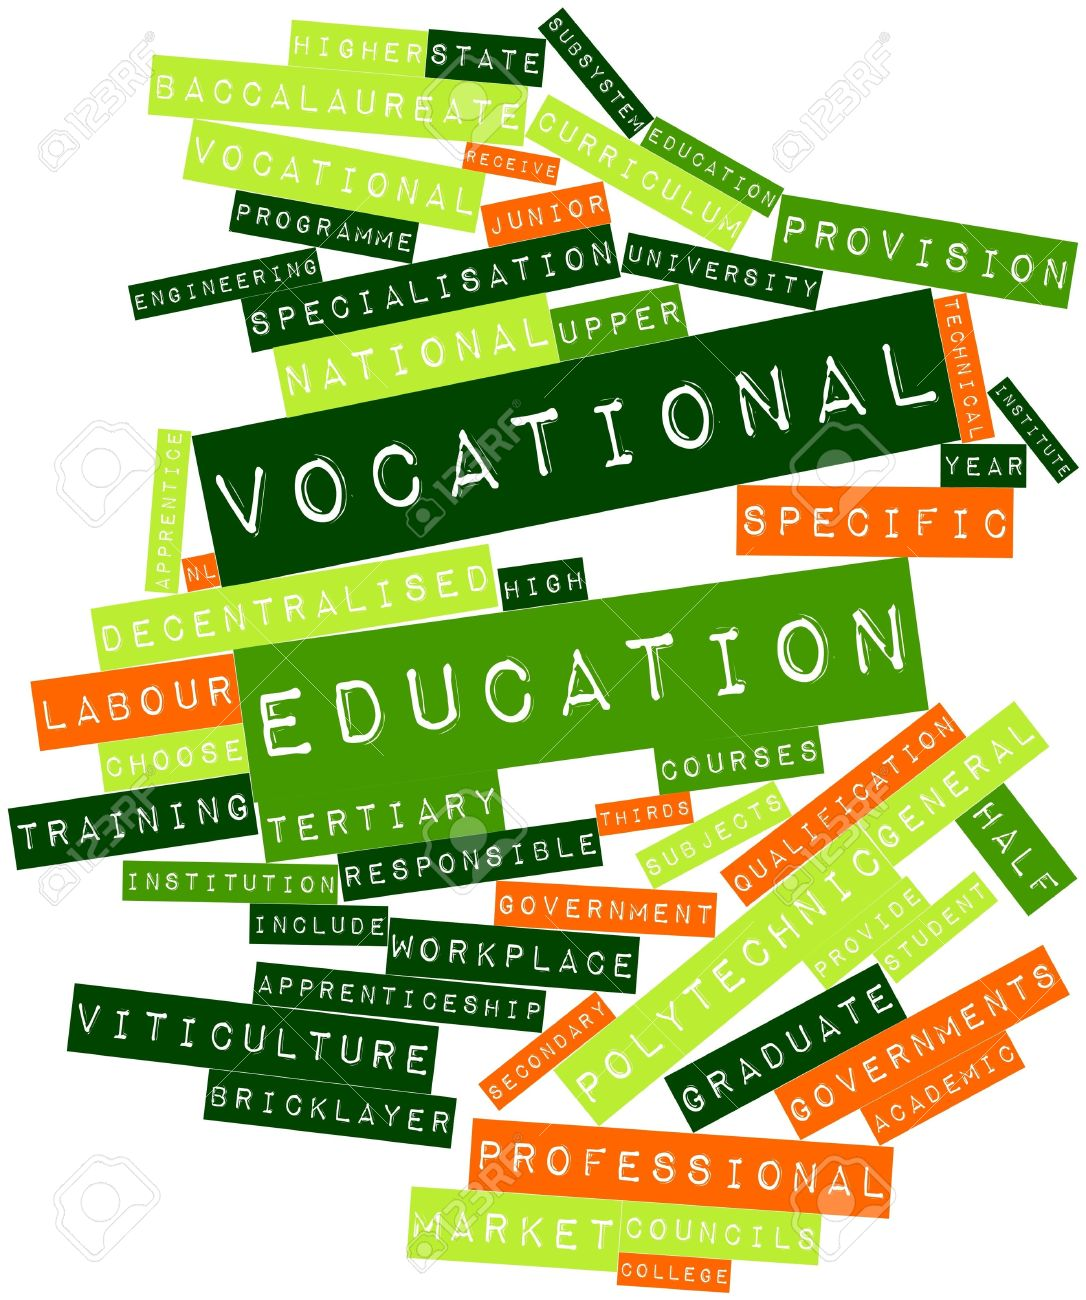 Vocational training clipart.